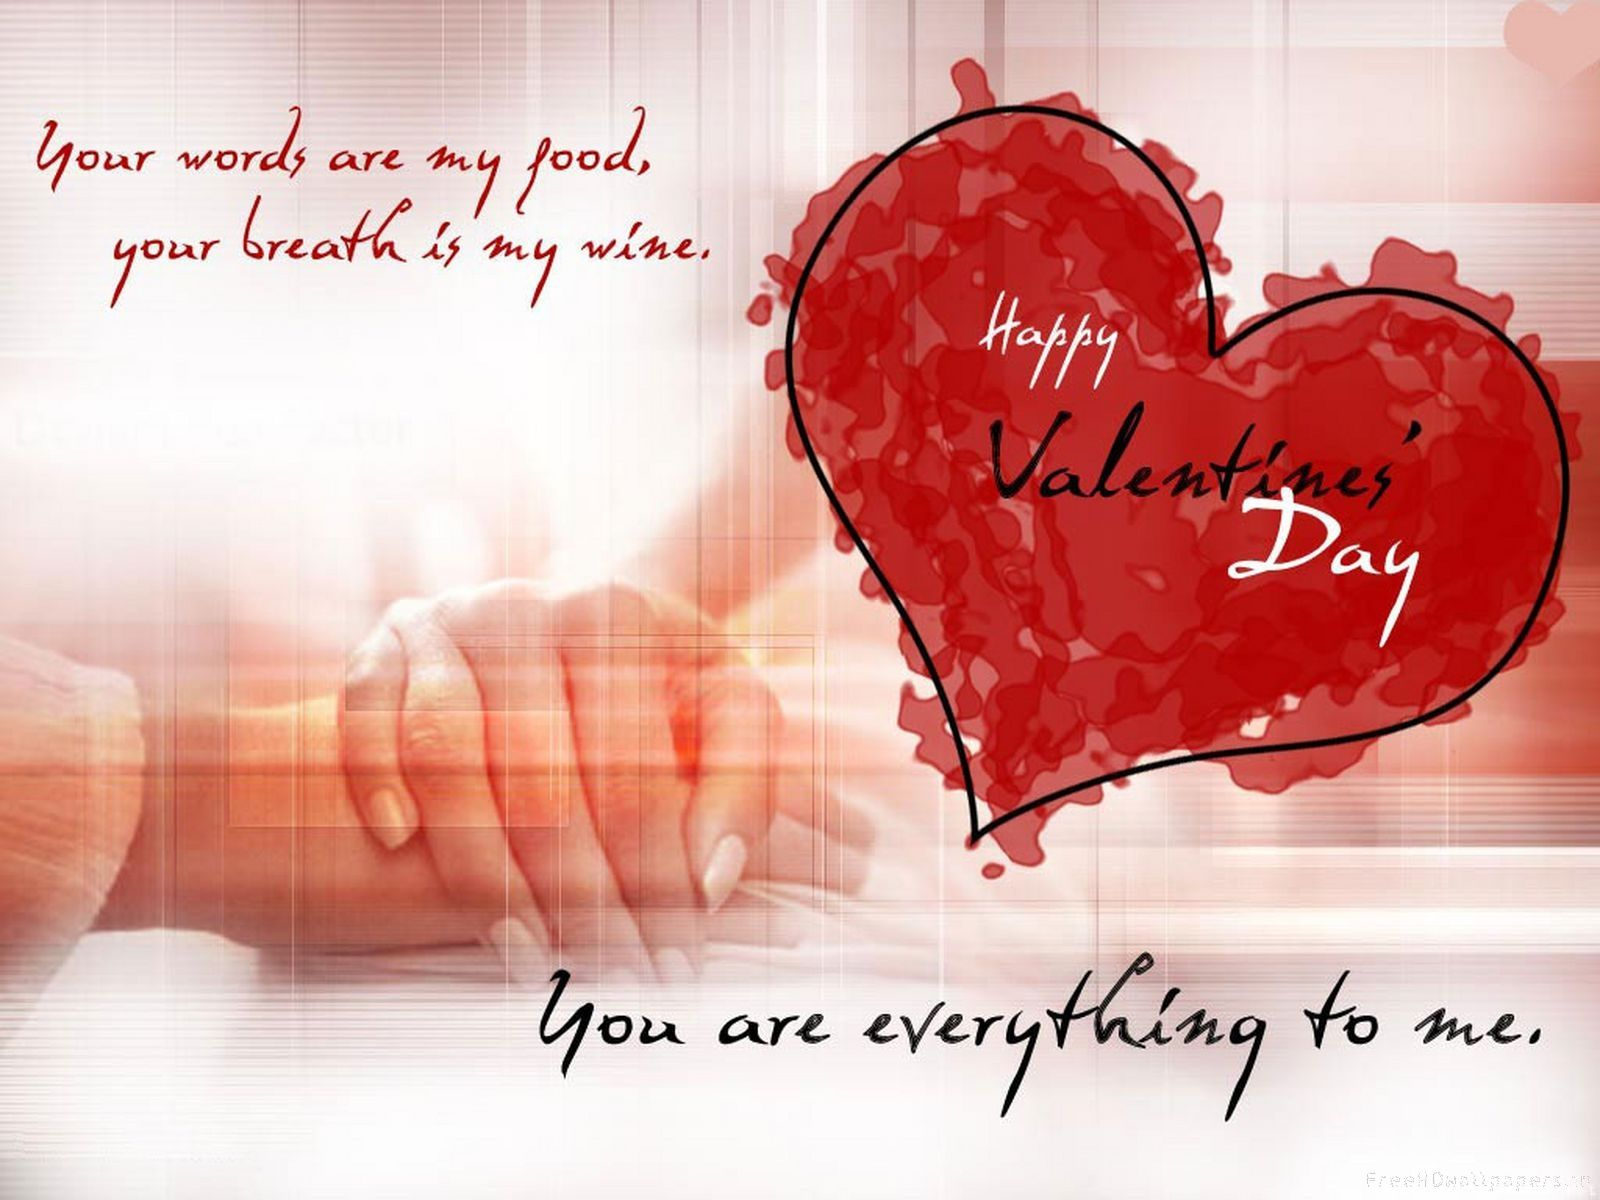 happy valintene my love   new valentines day cards picture